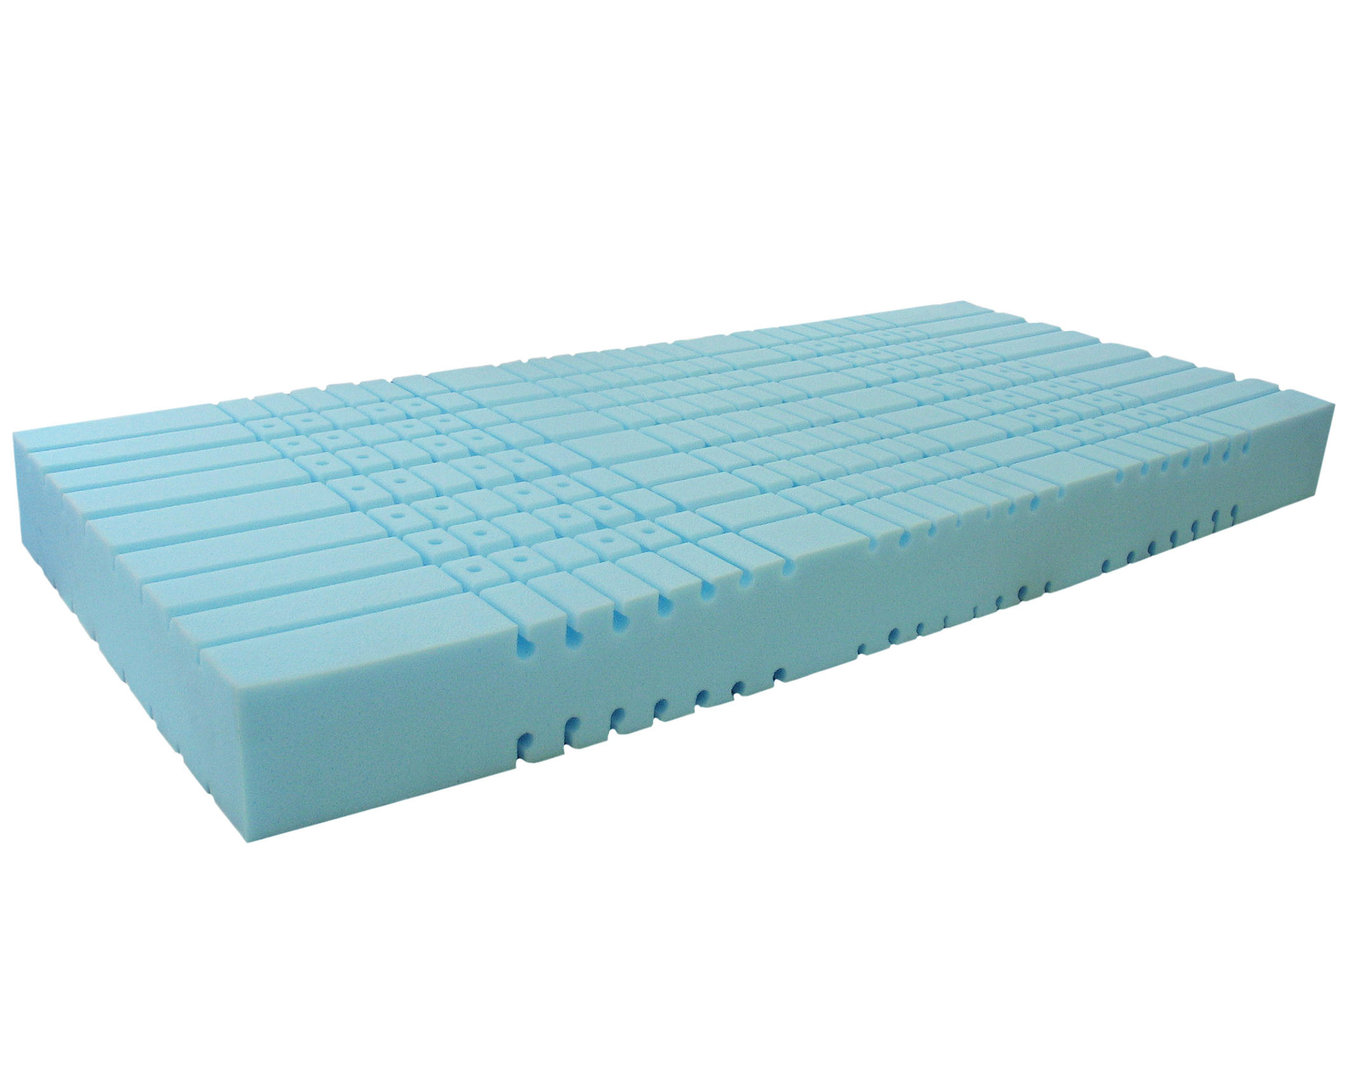 Mattress Blue Sky cold foam RG 4025 with cover